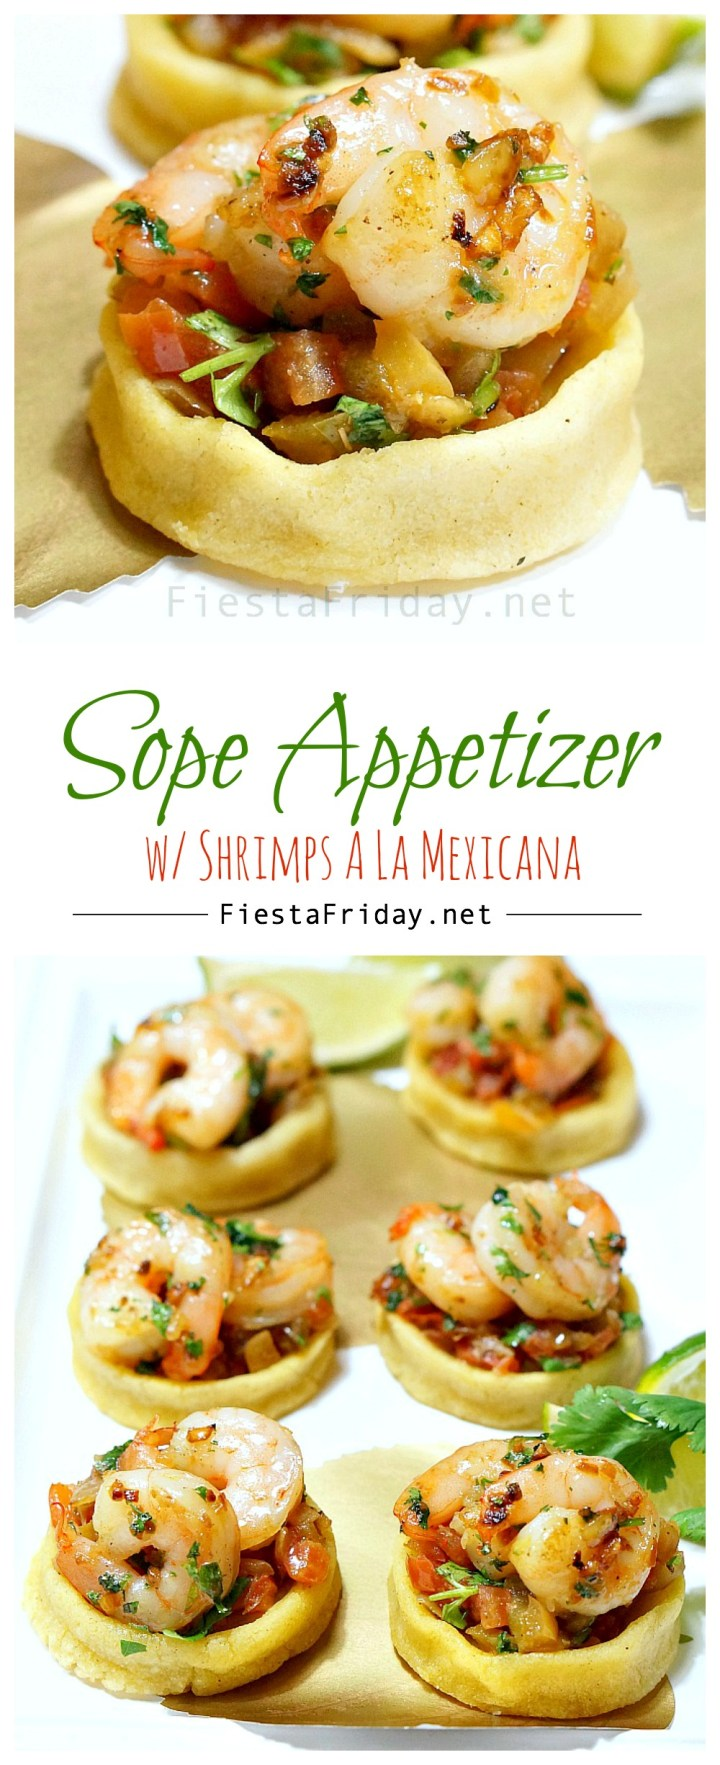 sope appetizer with shrimps a la mexicana | fiestafriday.net